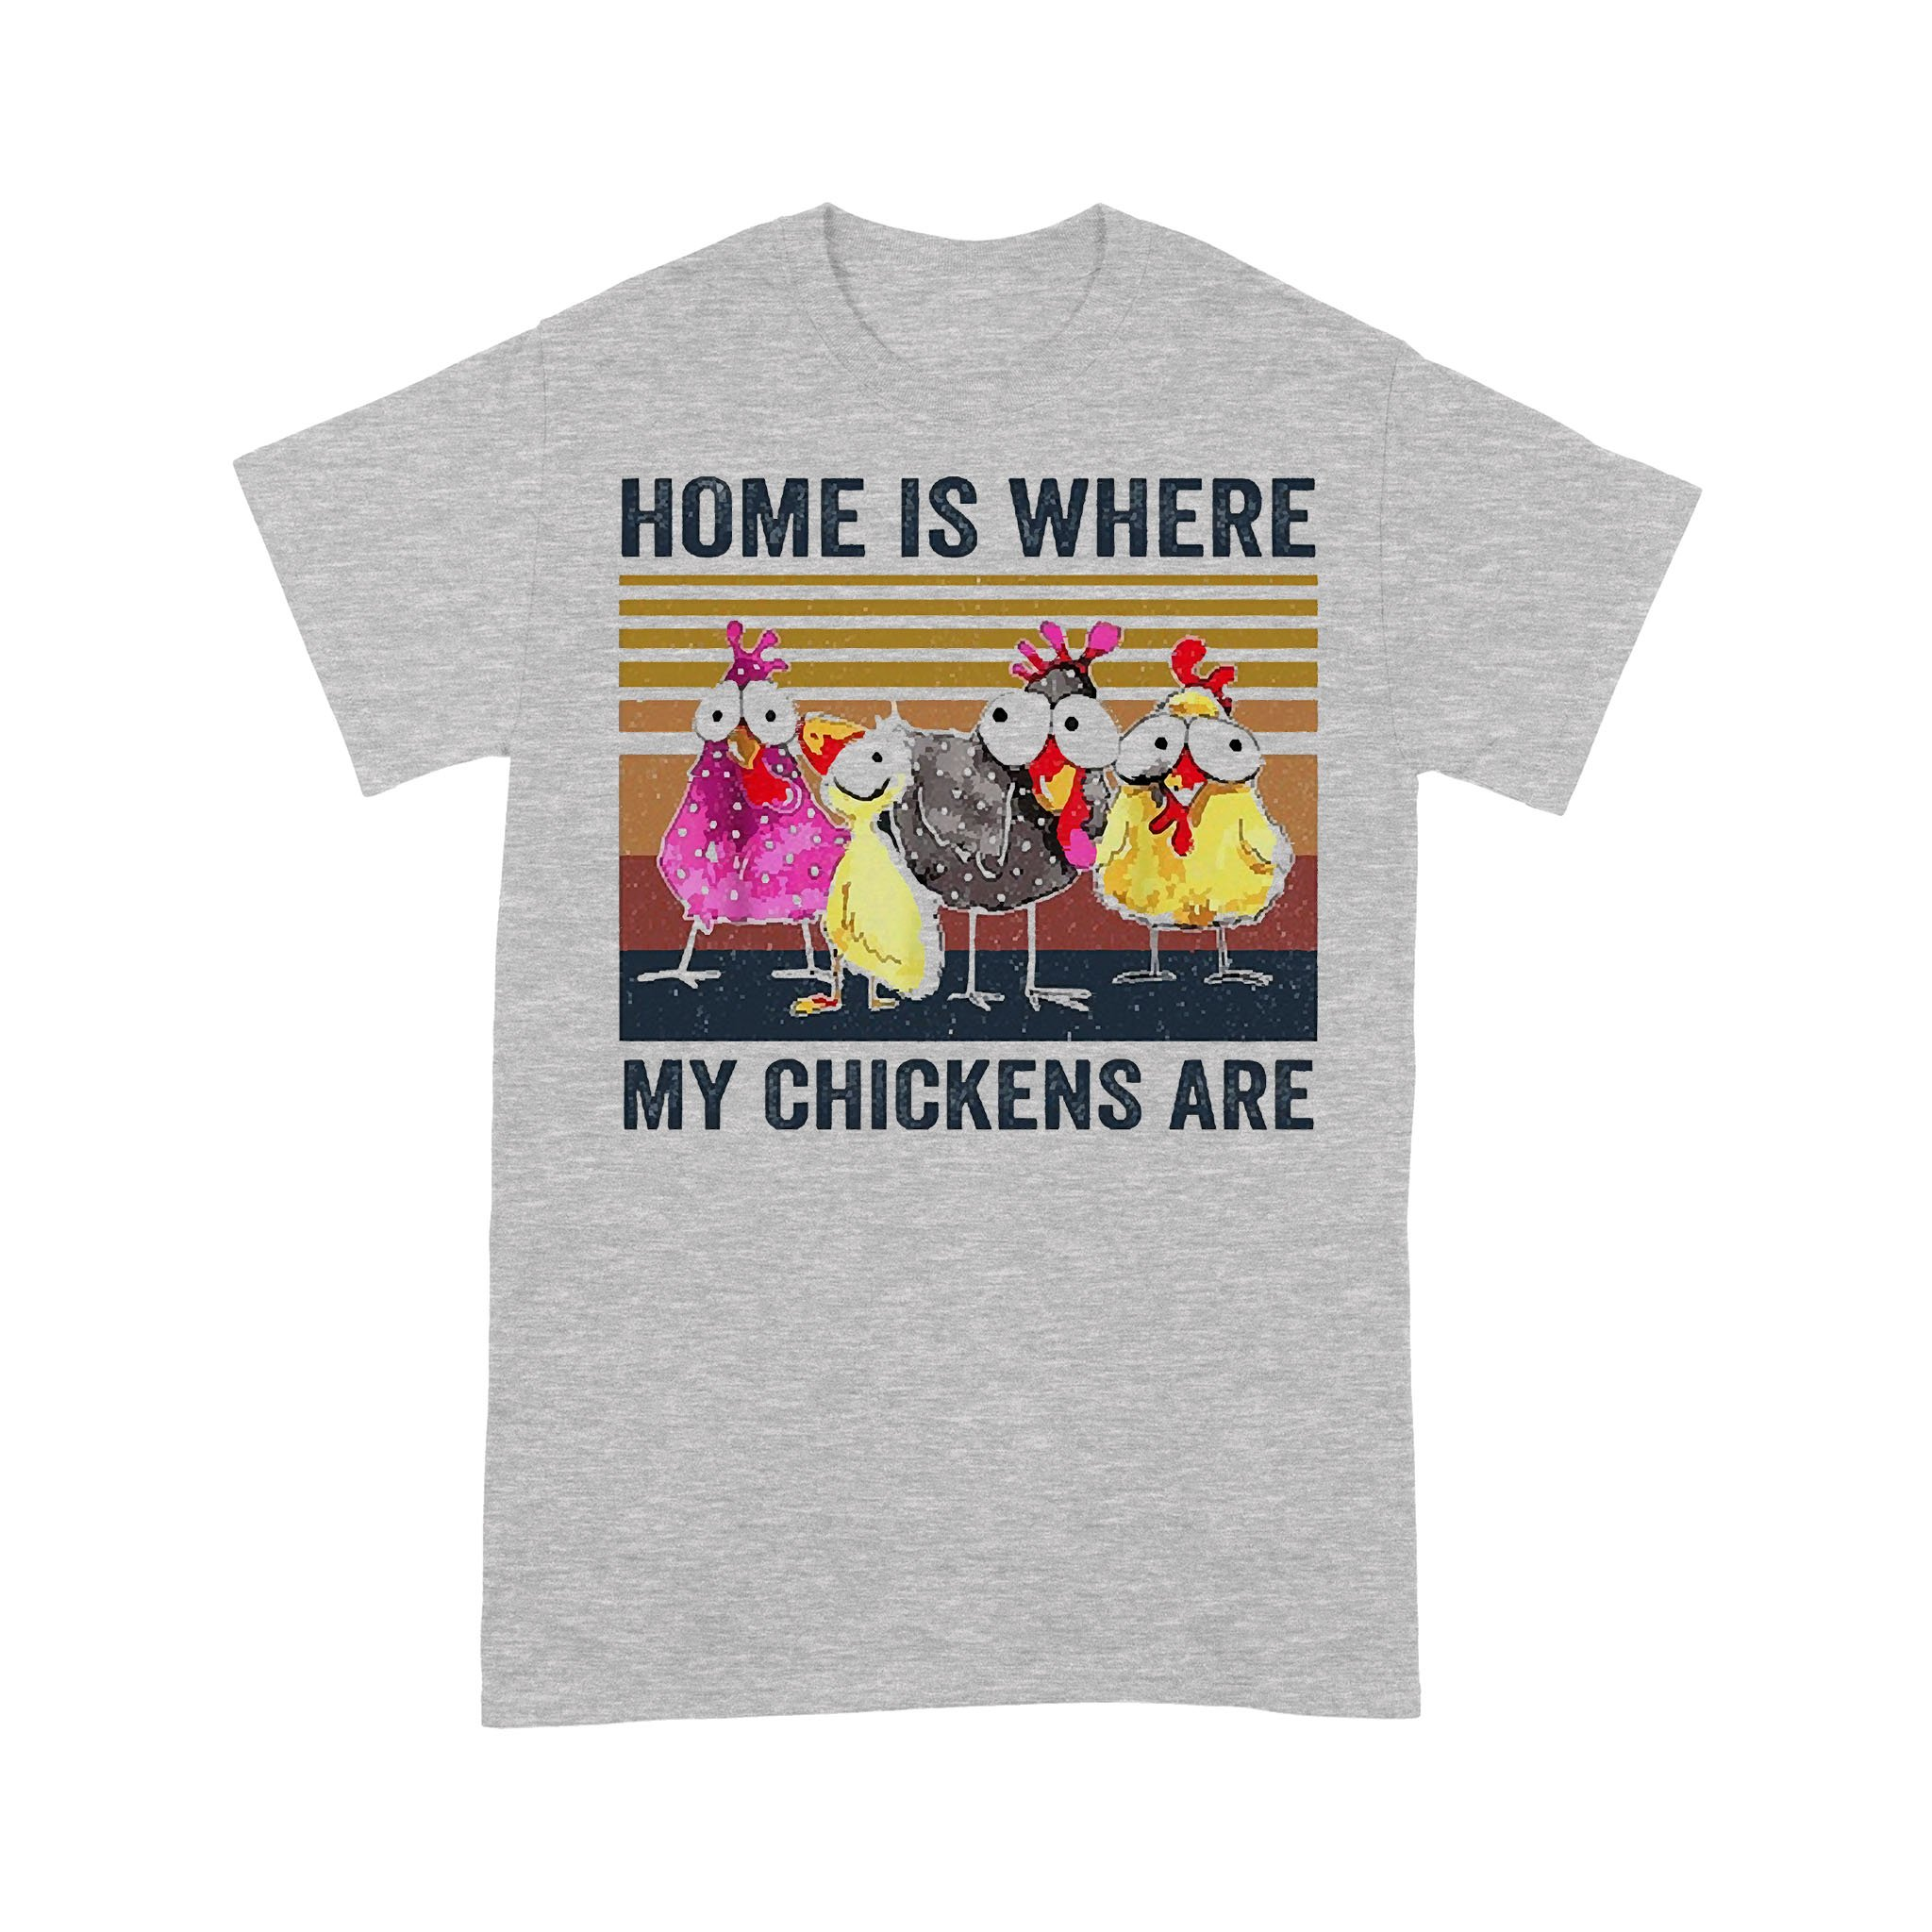 Home Is Where My Chickens Are Vintage Retro T-shirt